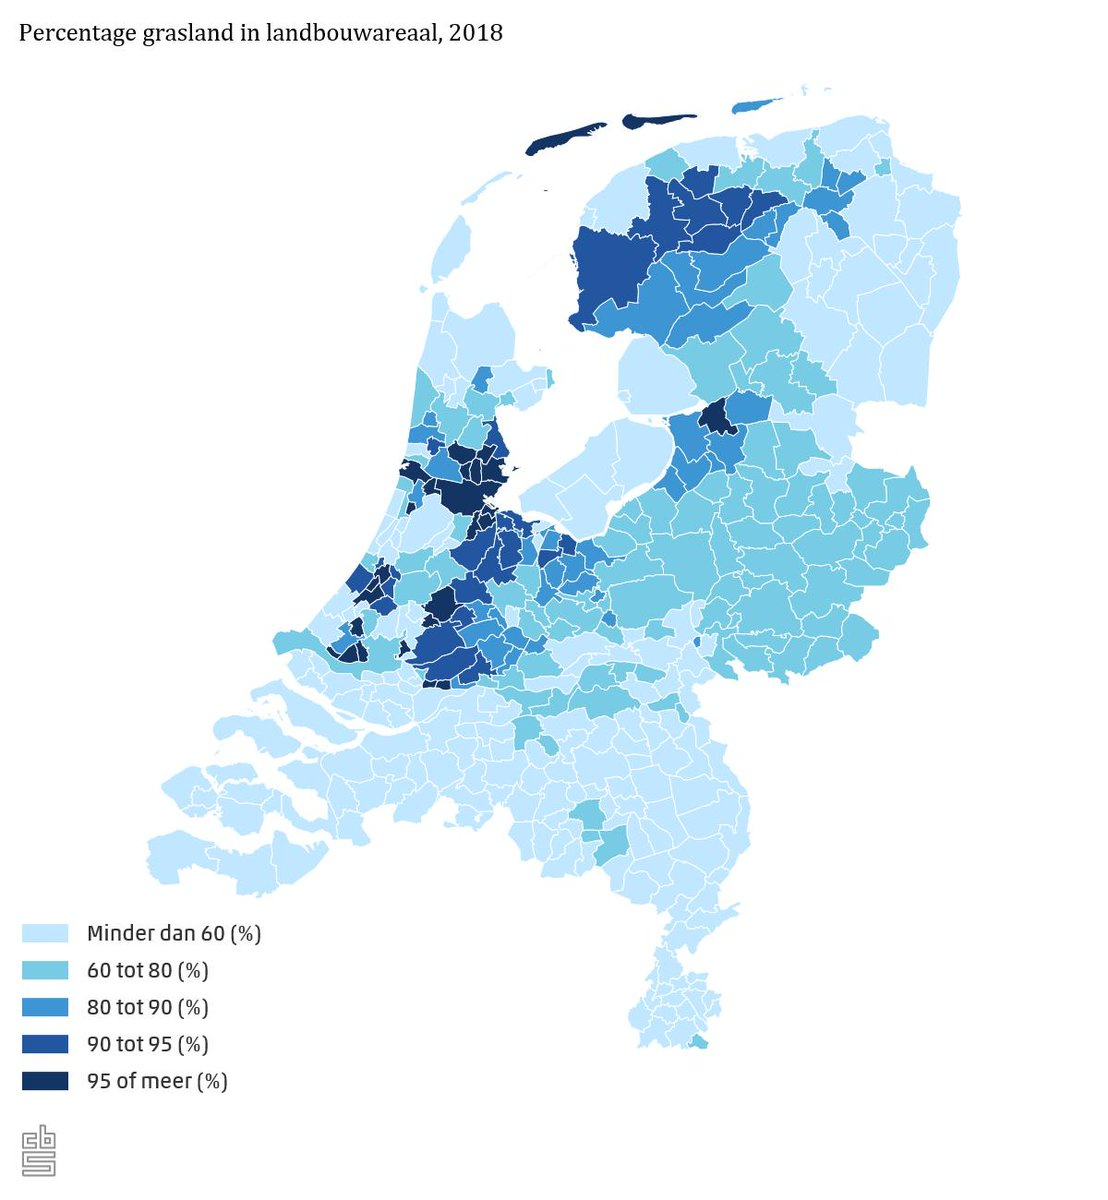 Percentage grasland in landbouwareaal 2018